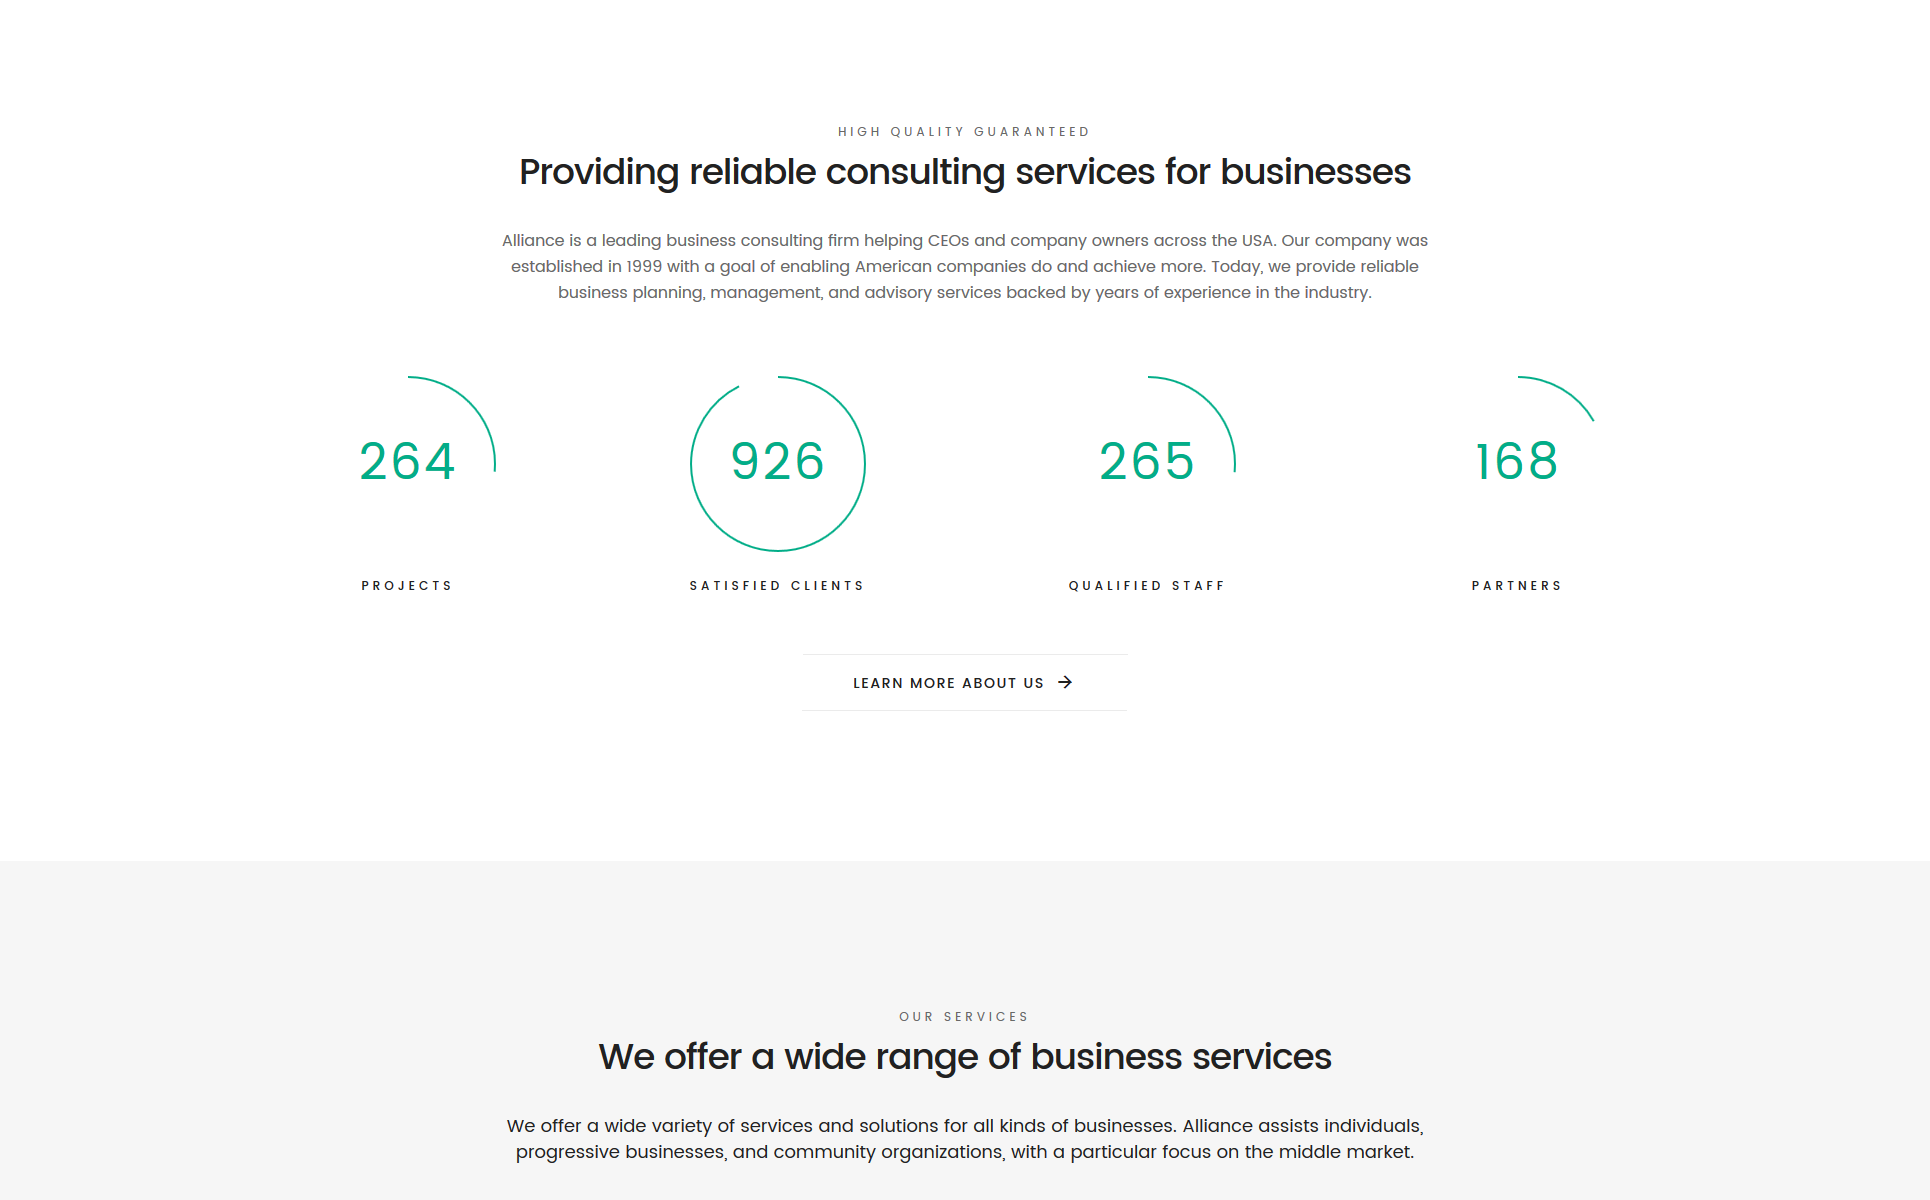 Alliance - Management & Consulting Modern HTML5 Landing Page Template